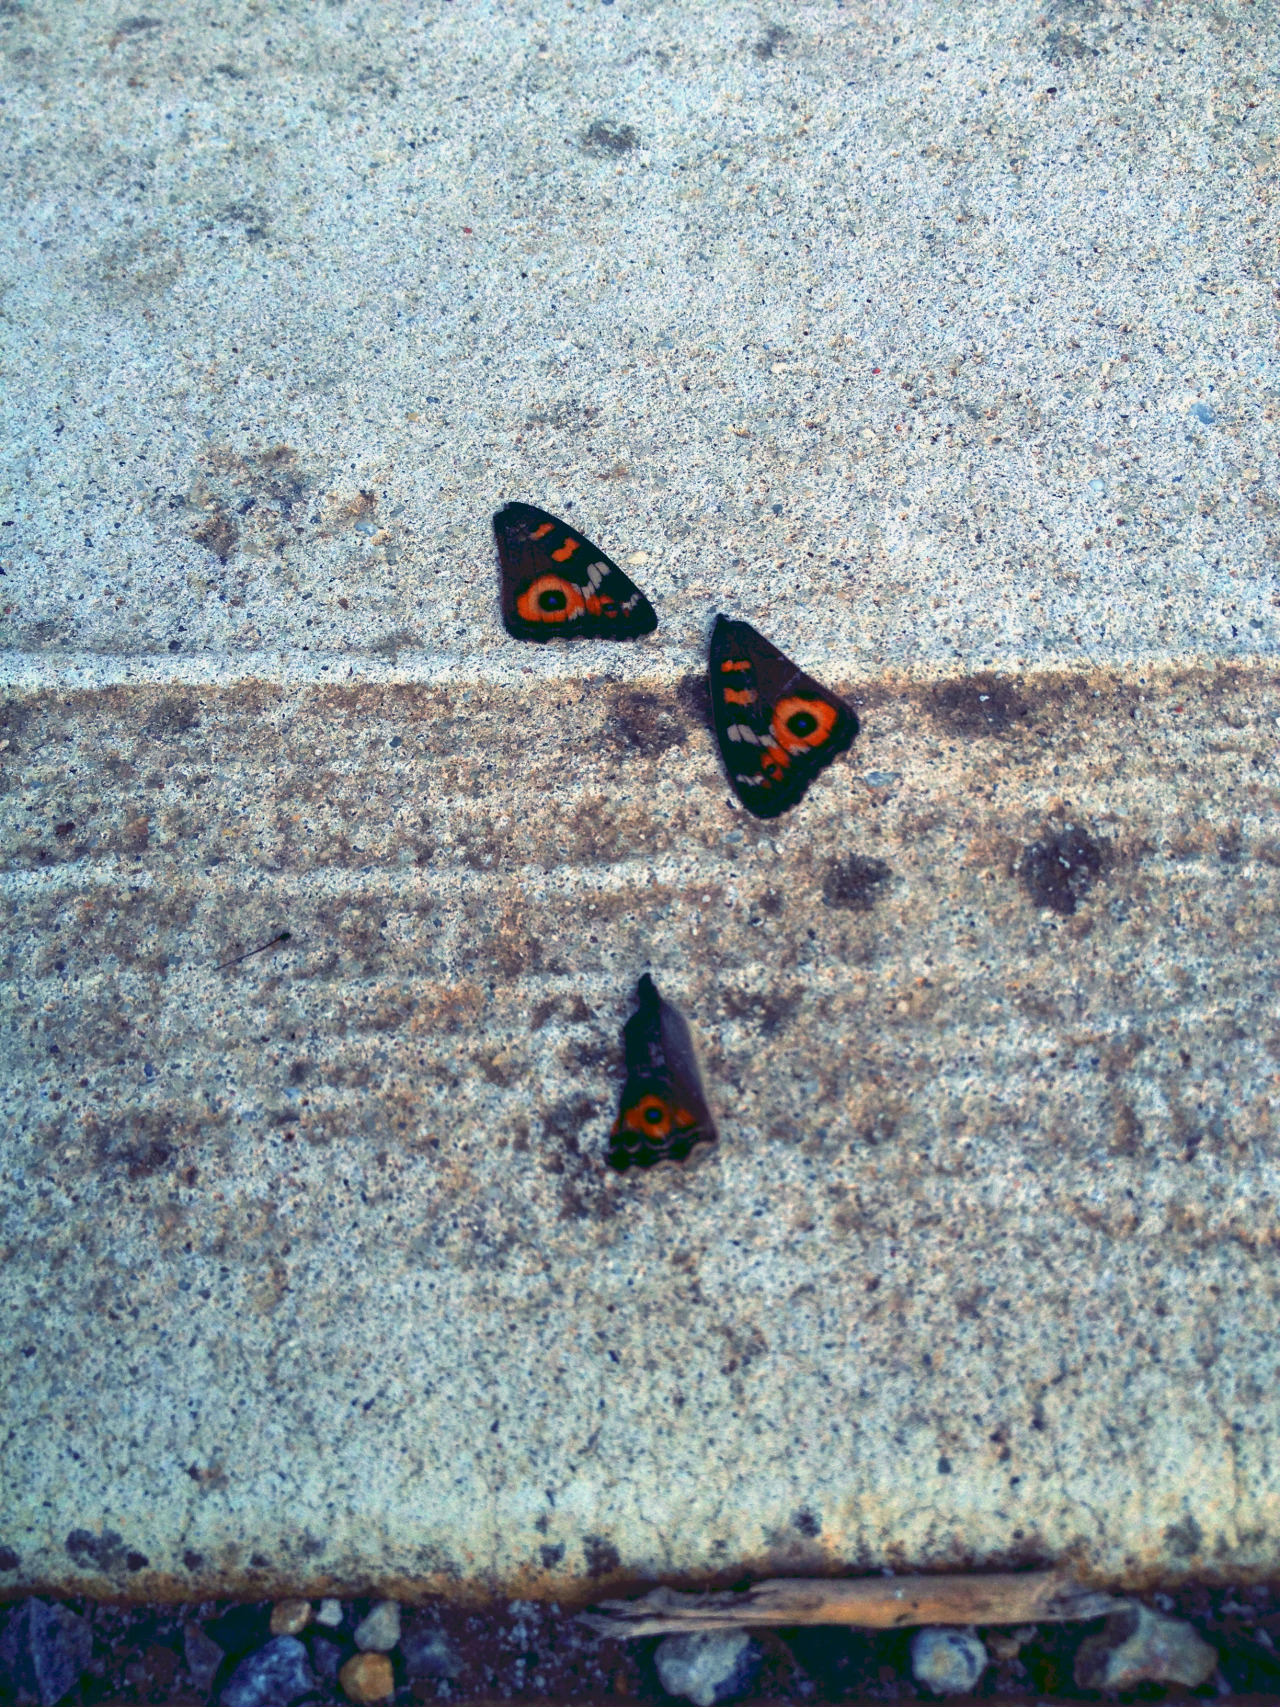 I looked down to the pavement and saw butterfly wings.